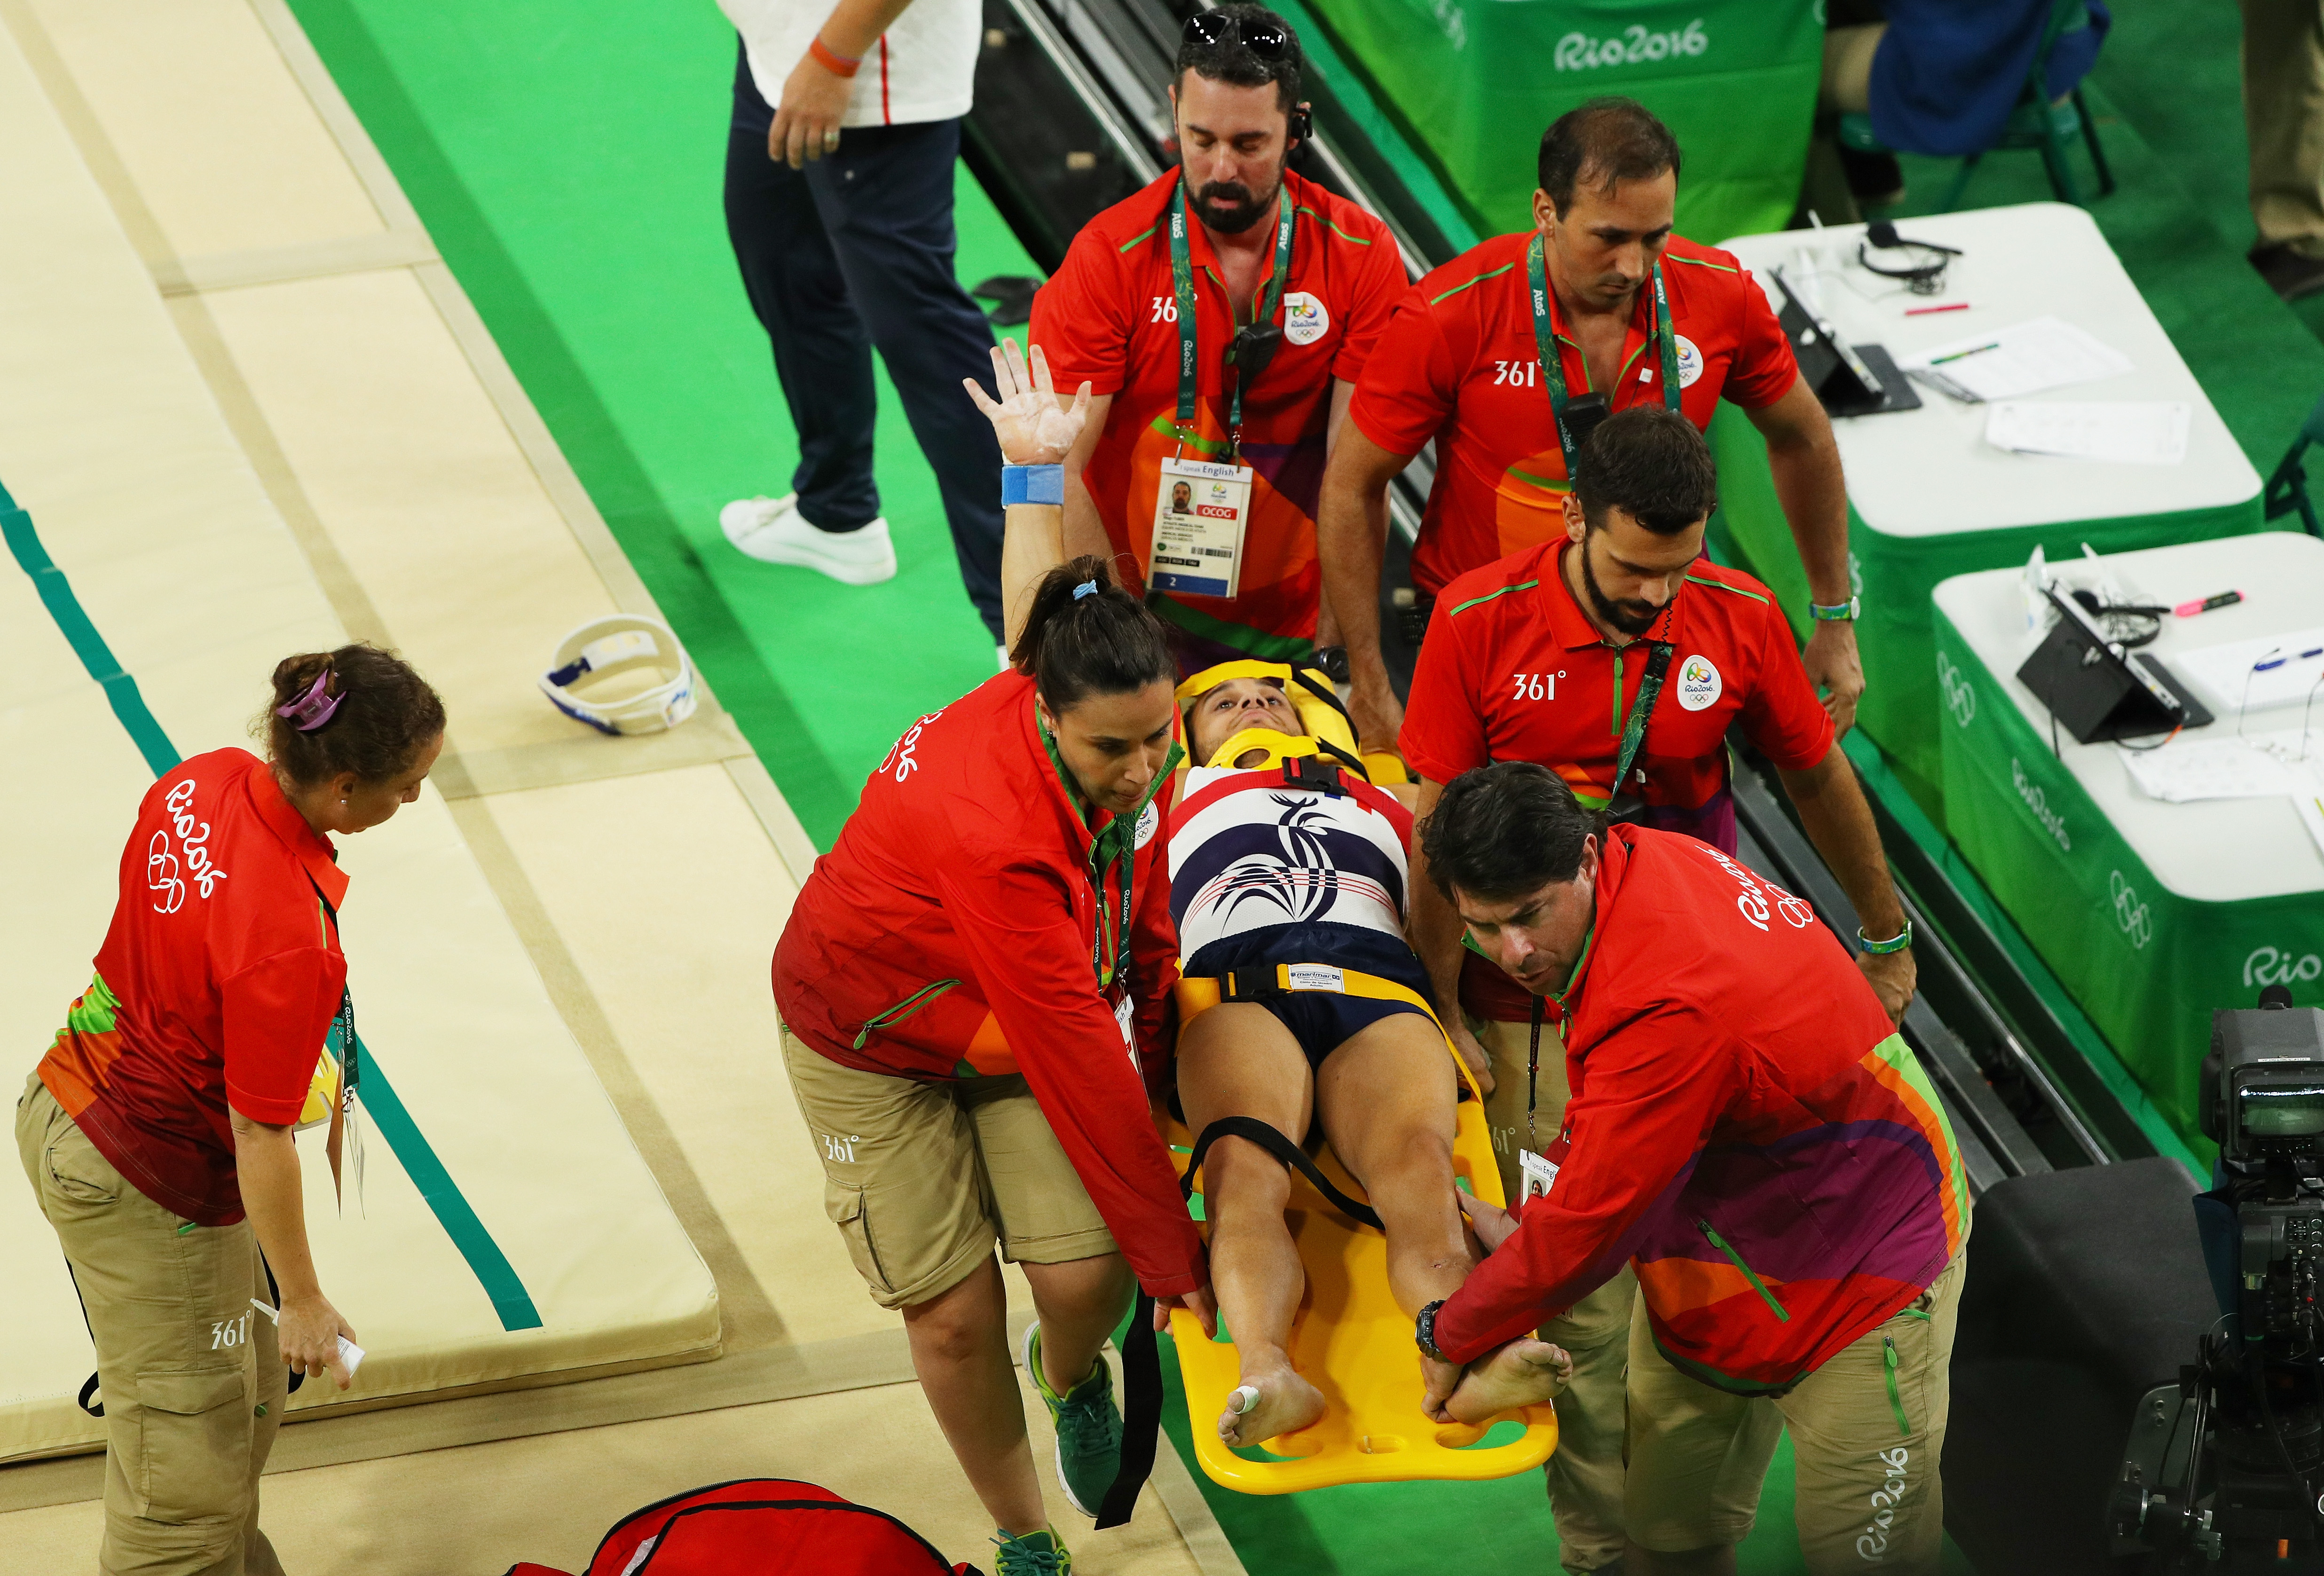 Samir Ait Said of France receives medical attention during the Gymnastics Men's Team qualification on Day 1 of the Rio 2016 Olympic Games on August 6, 2016.